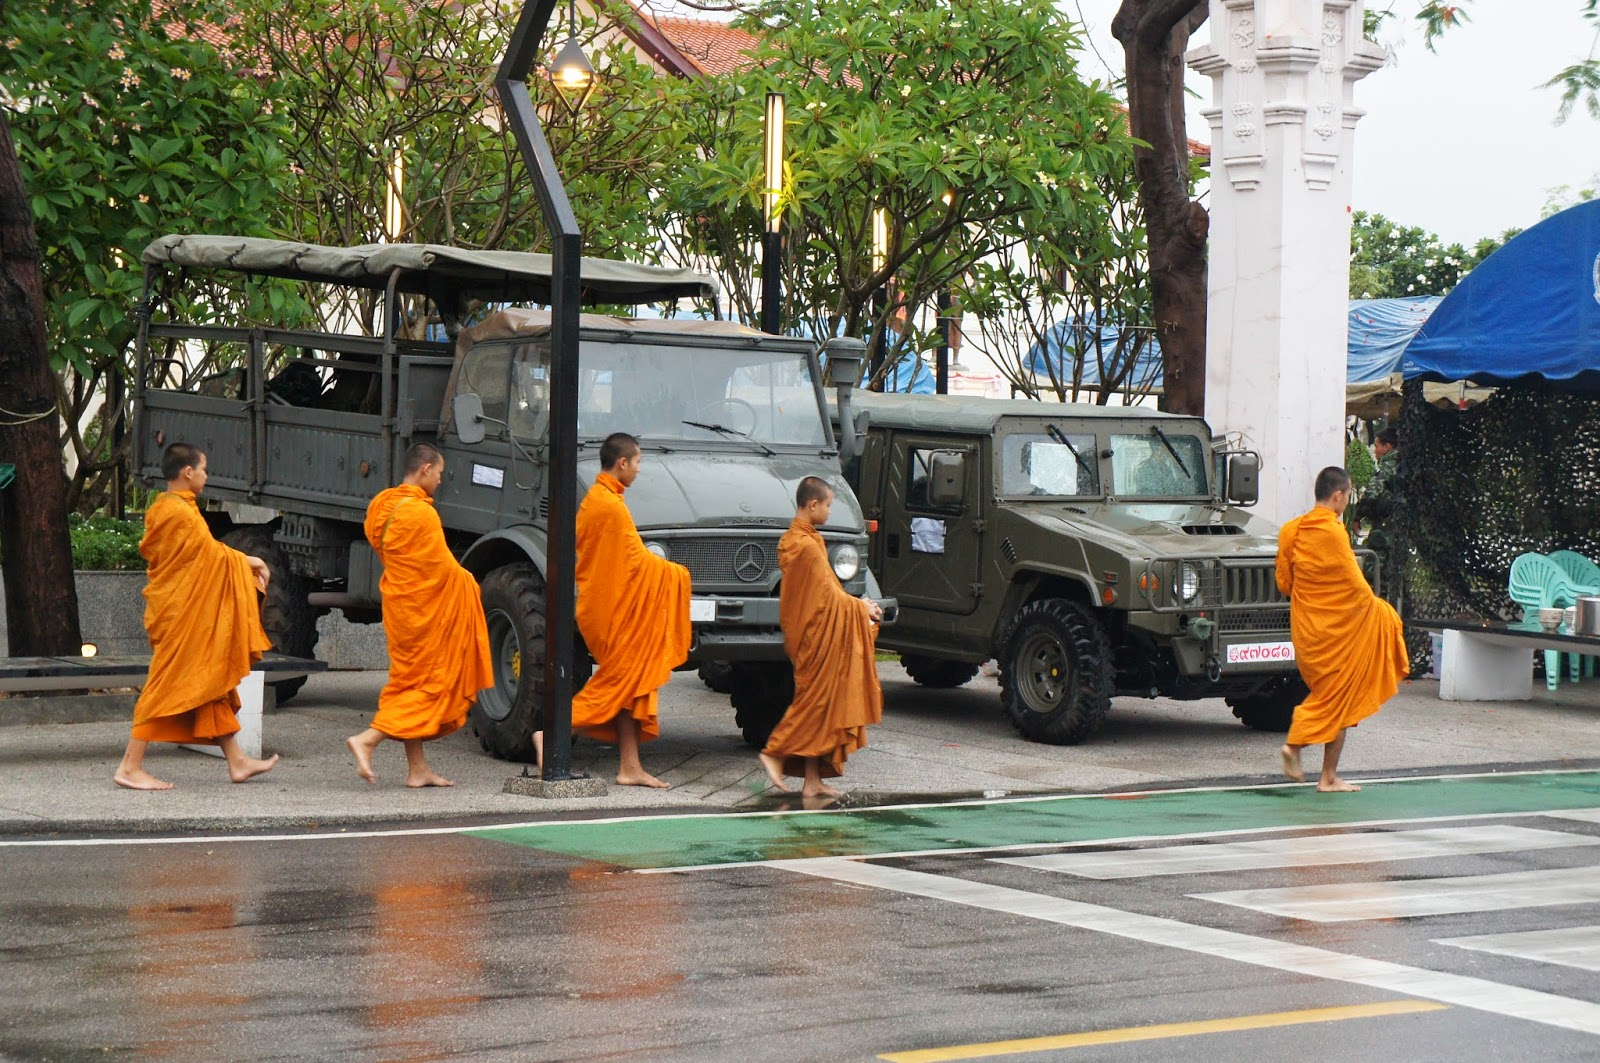 Chiang Mai - Monks and martial law